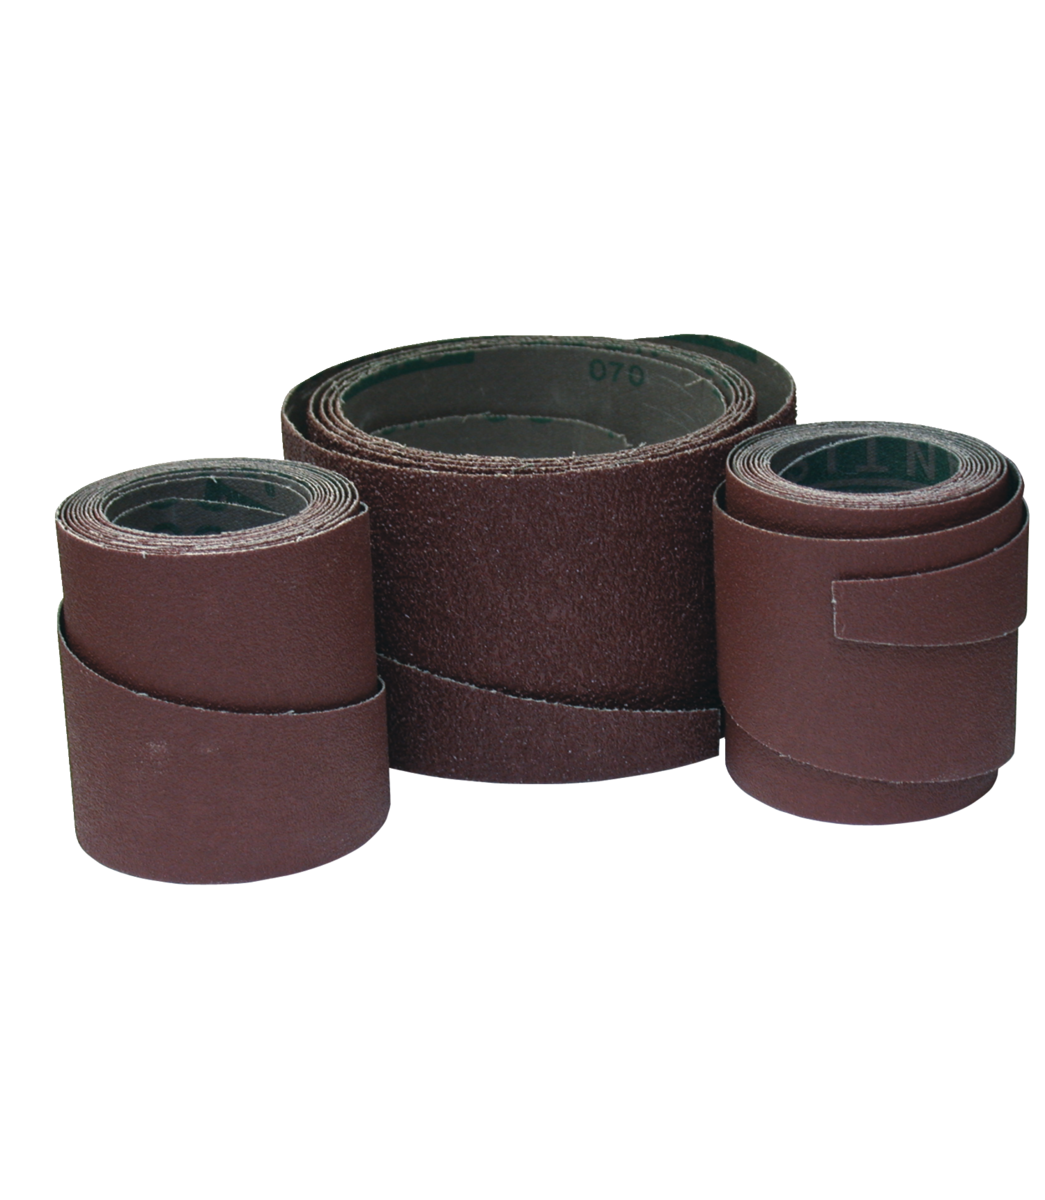 """16"""" 120 Grit Ready-To-Wrap Sandpaper 4-Wraps in Box"""